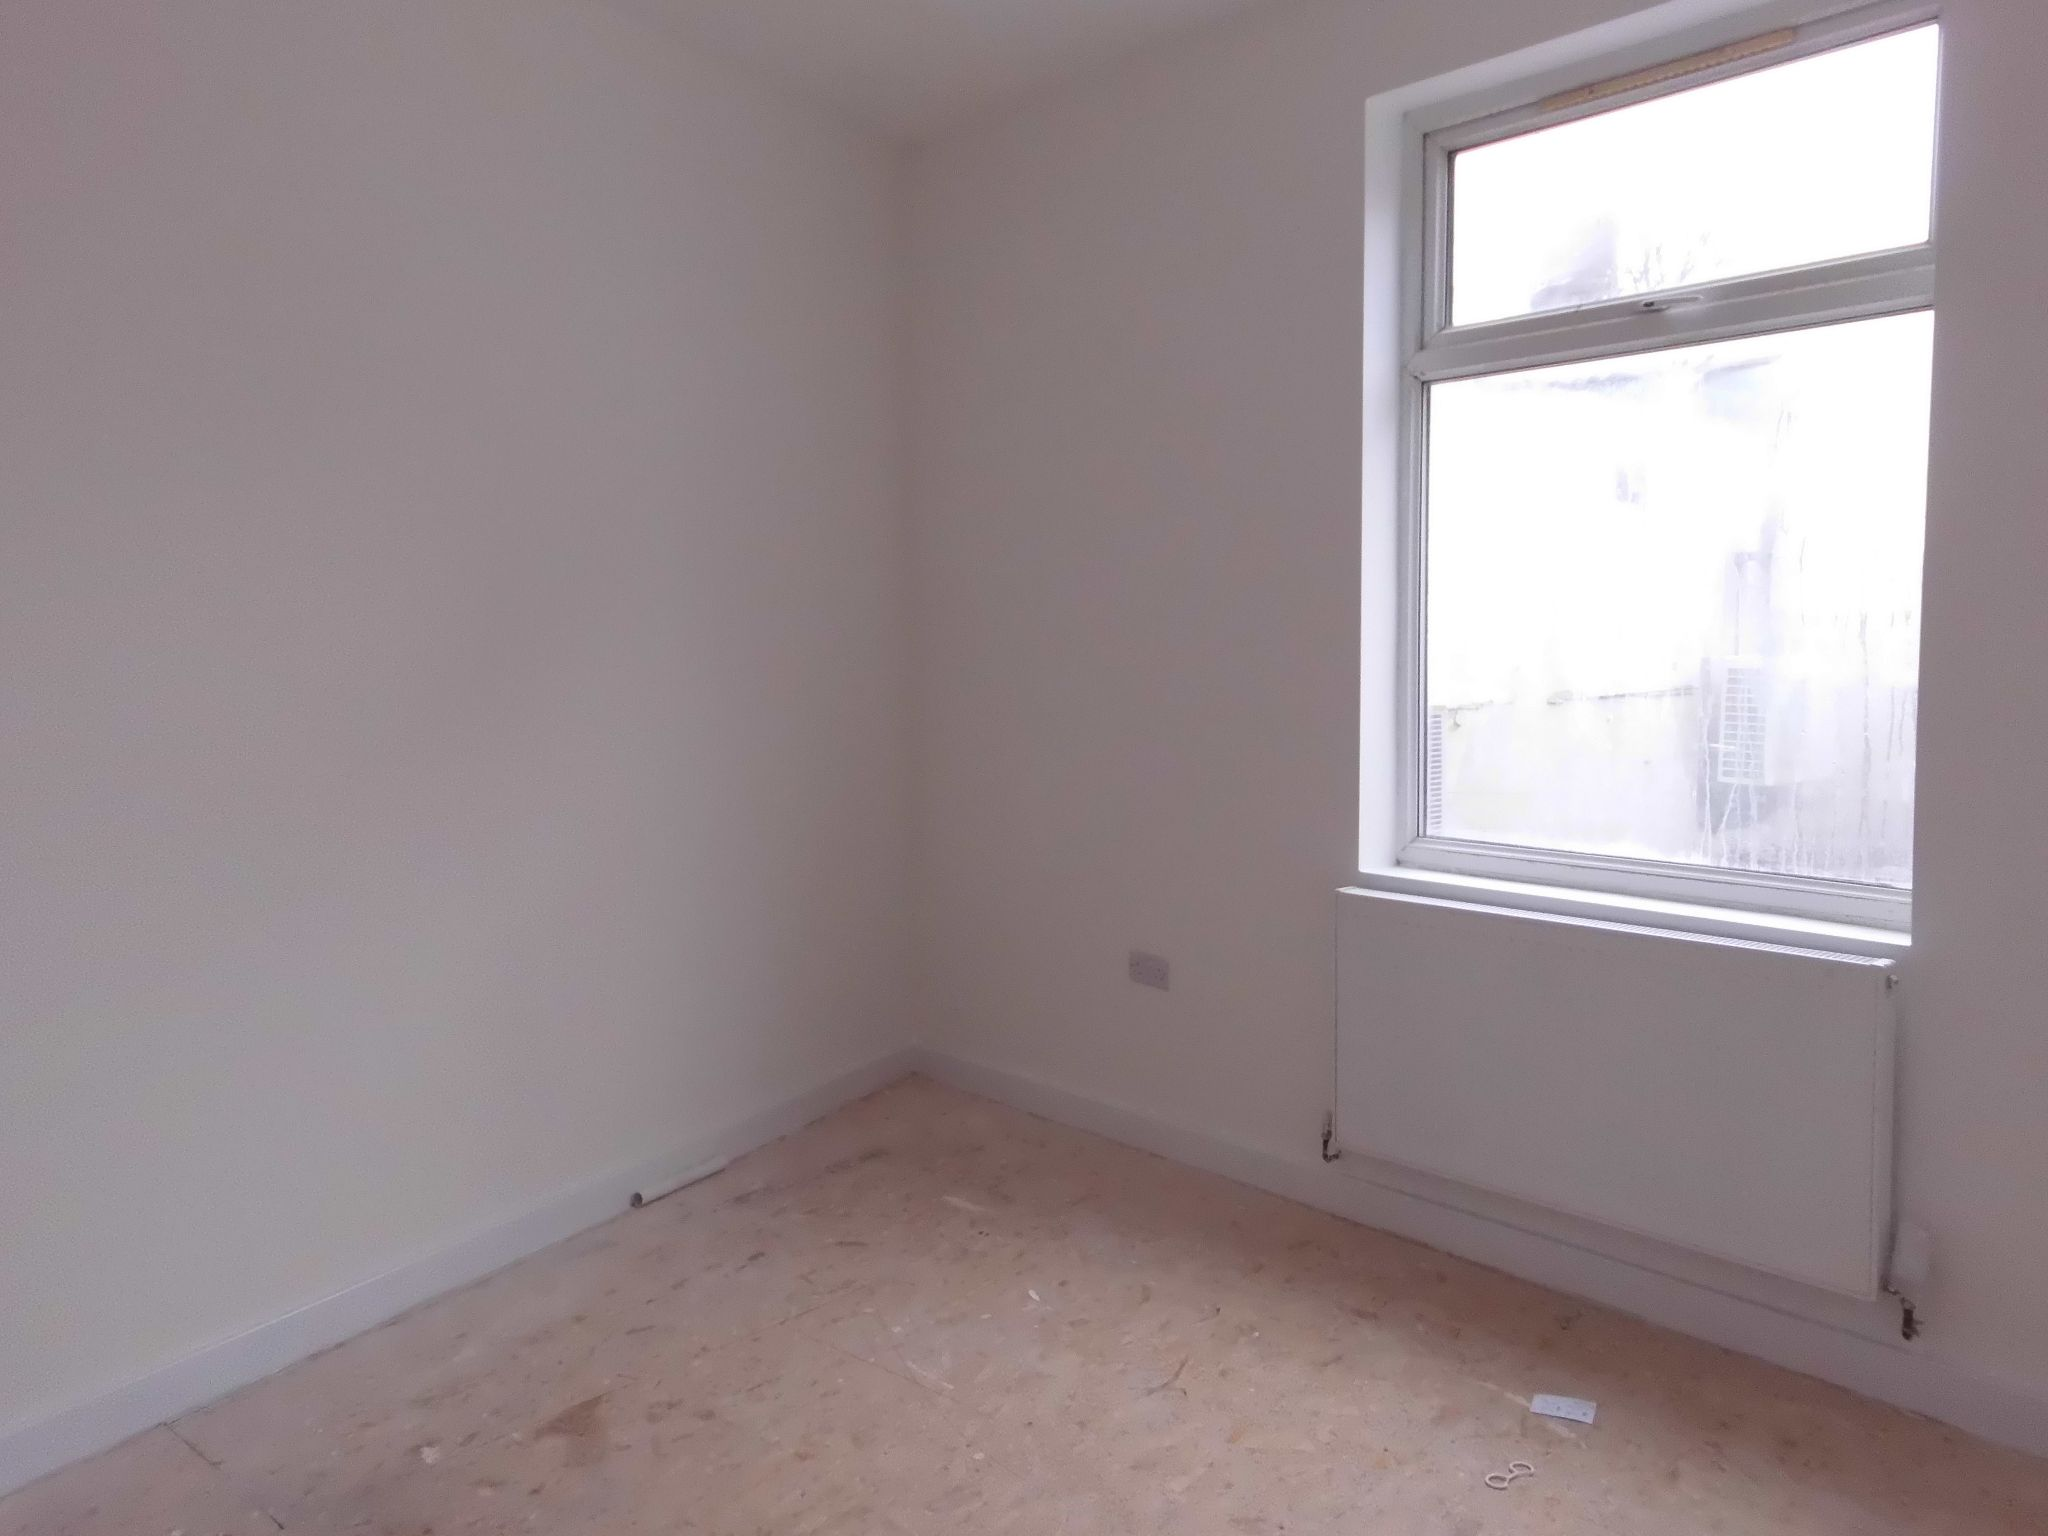 1 bedroom flat flat/apartment To Let in Leicester - Photograph 3.